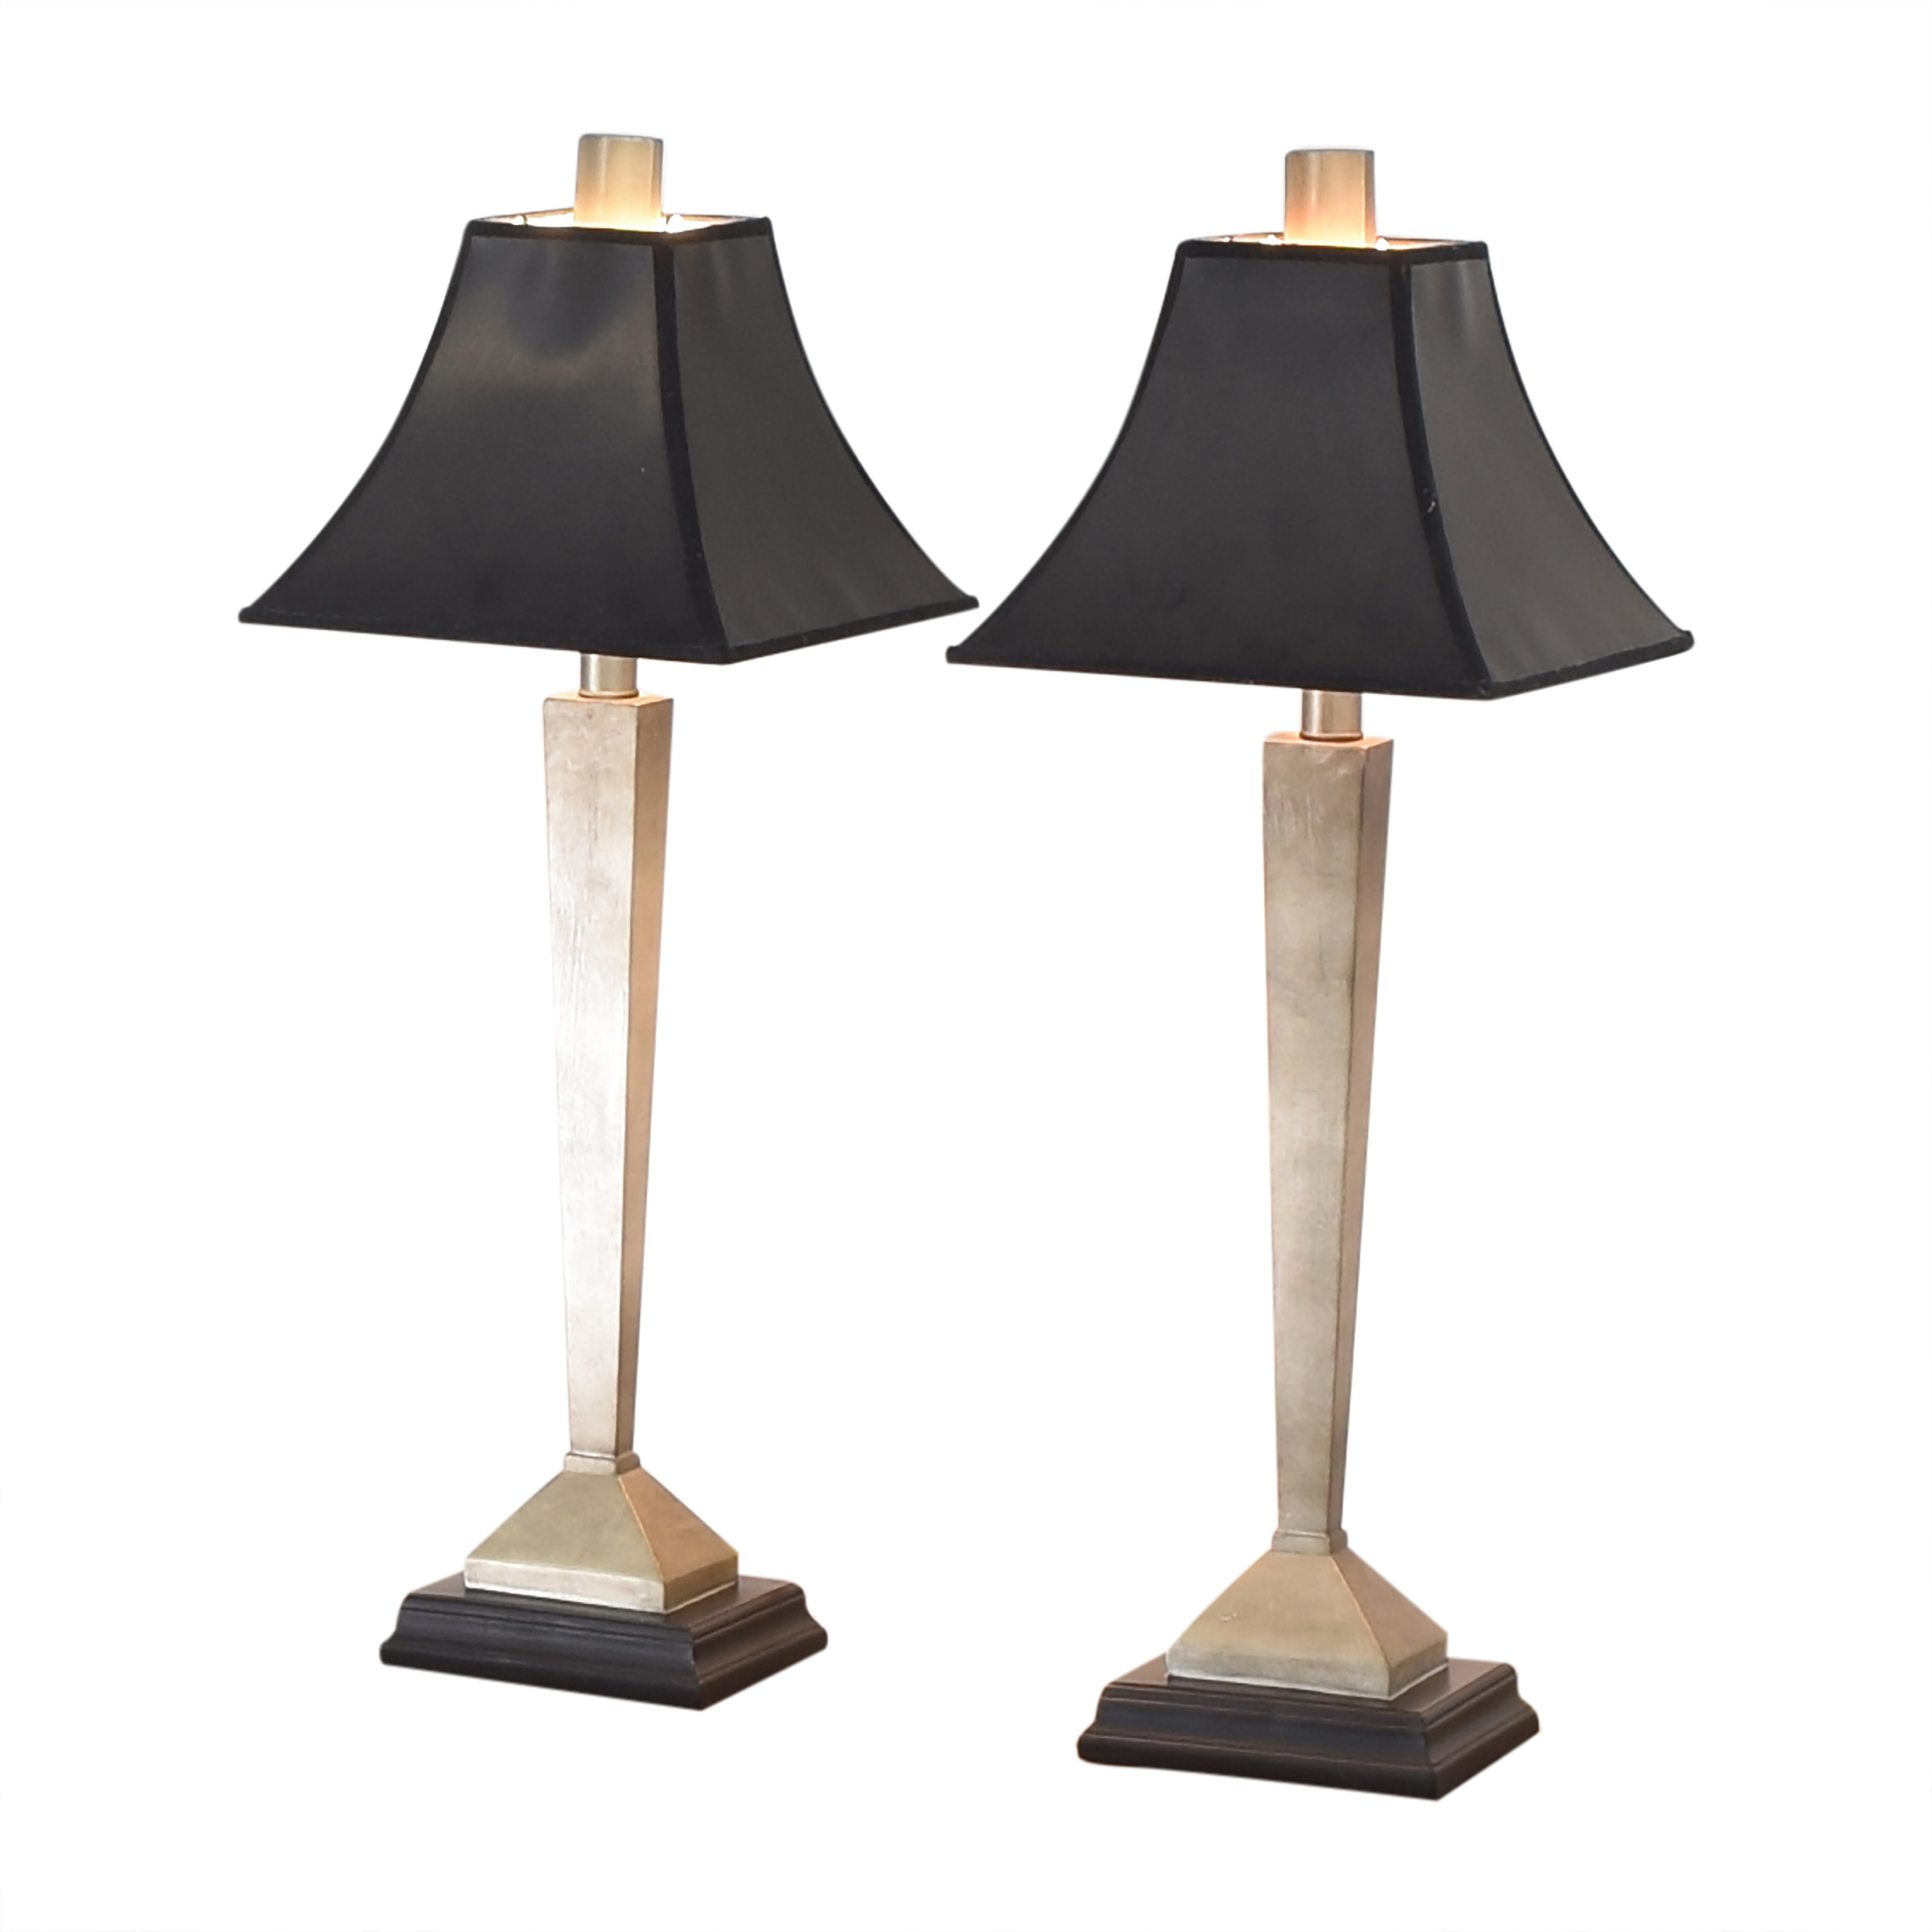 46 Off Tall Table Lamps Decor